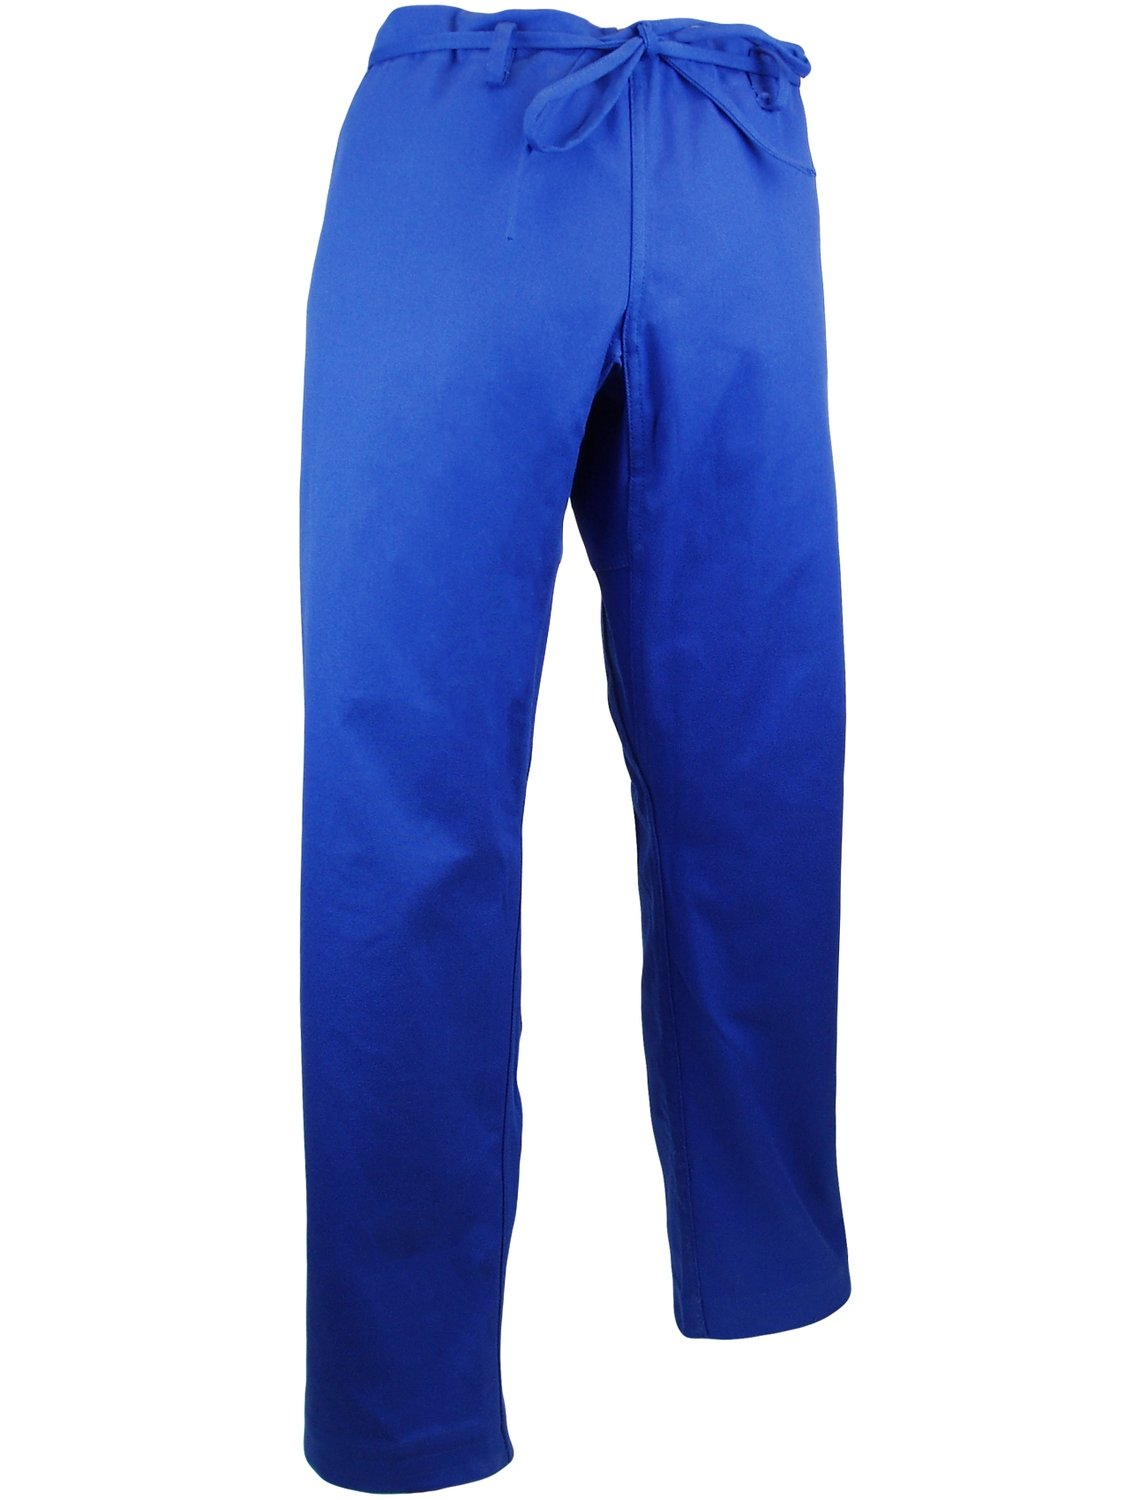 Karate Uniform, Pants, 12 oz., Blue